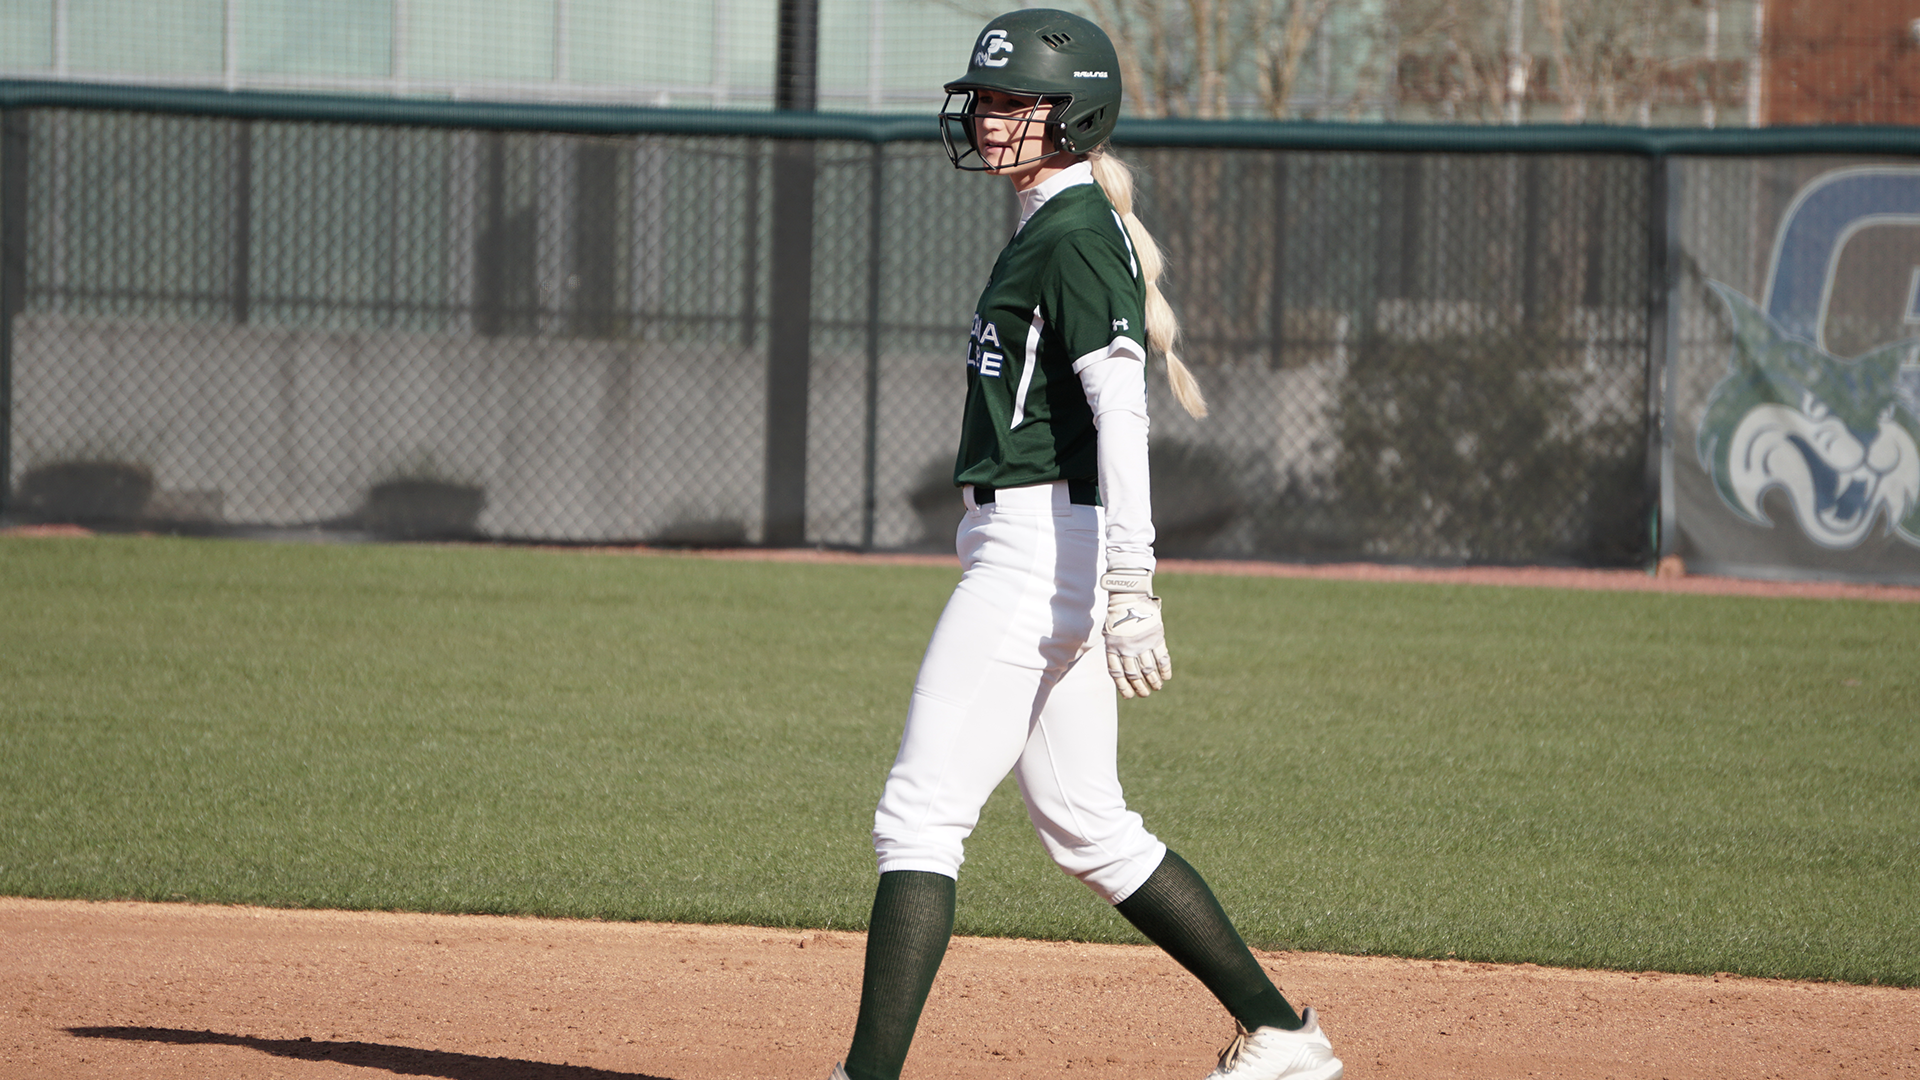 Strong Pitching, Hot Bats Power Bobcat Softball to Doubleheader Sweep of #25 Newberry